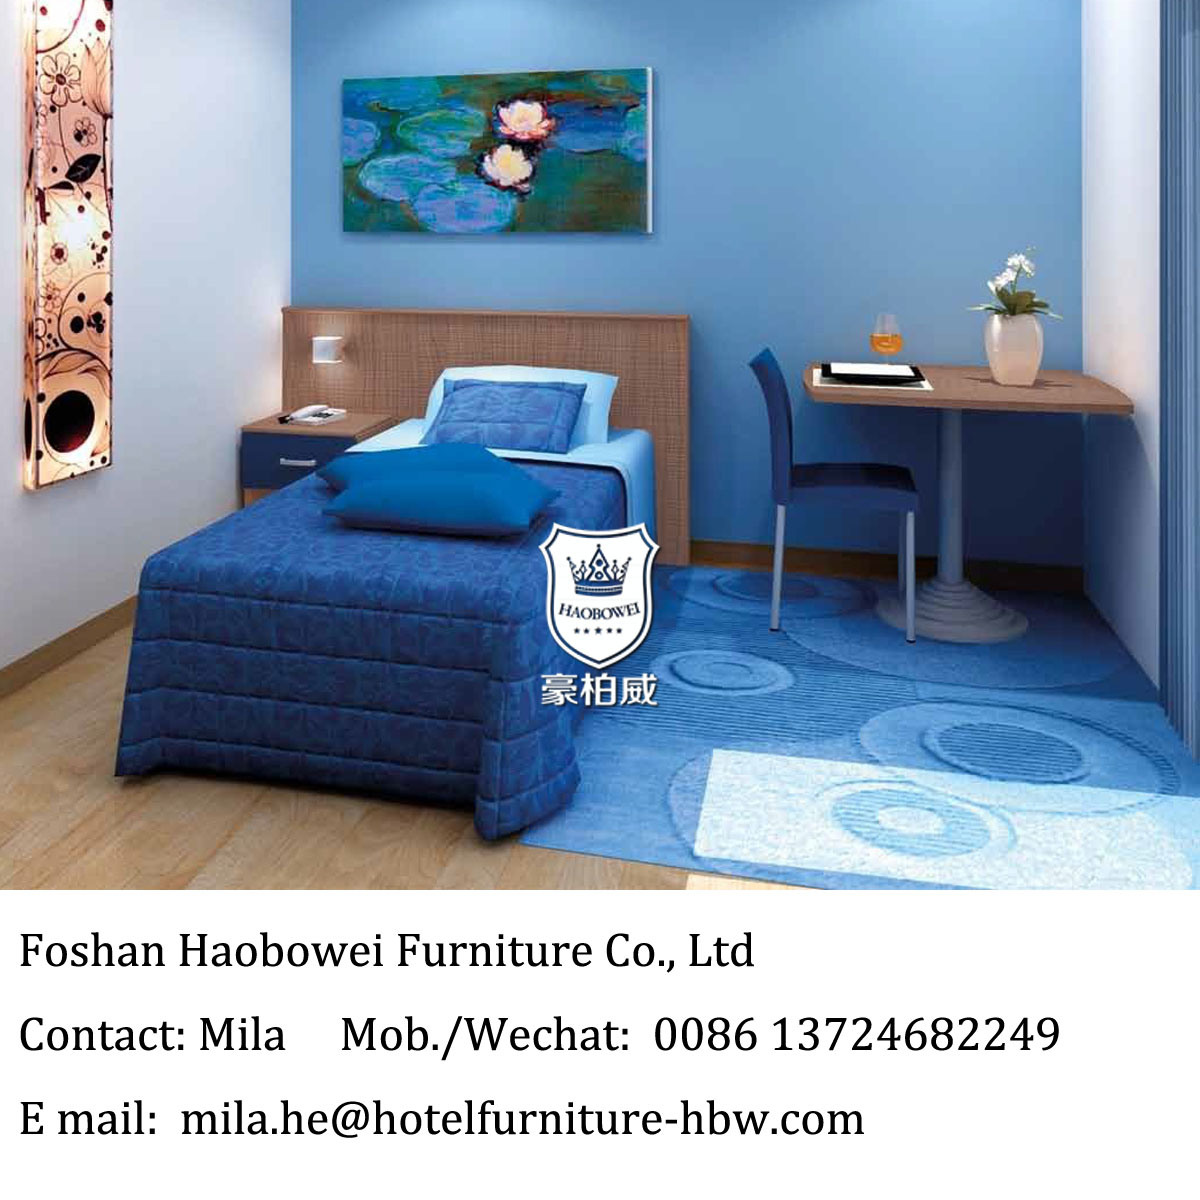 [Hot Item] Apartment Furniture for Single People with Kitchen Dorm Room  Furniture in College